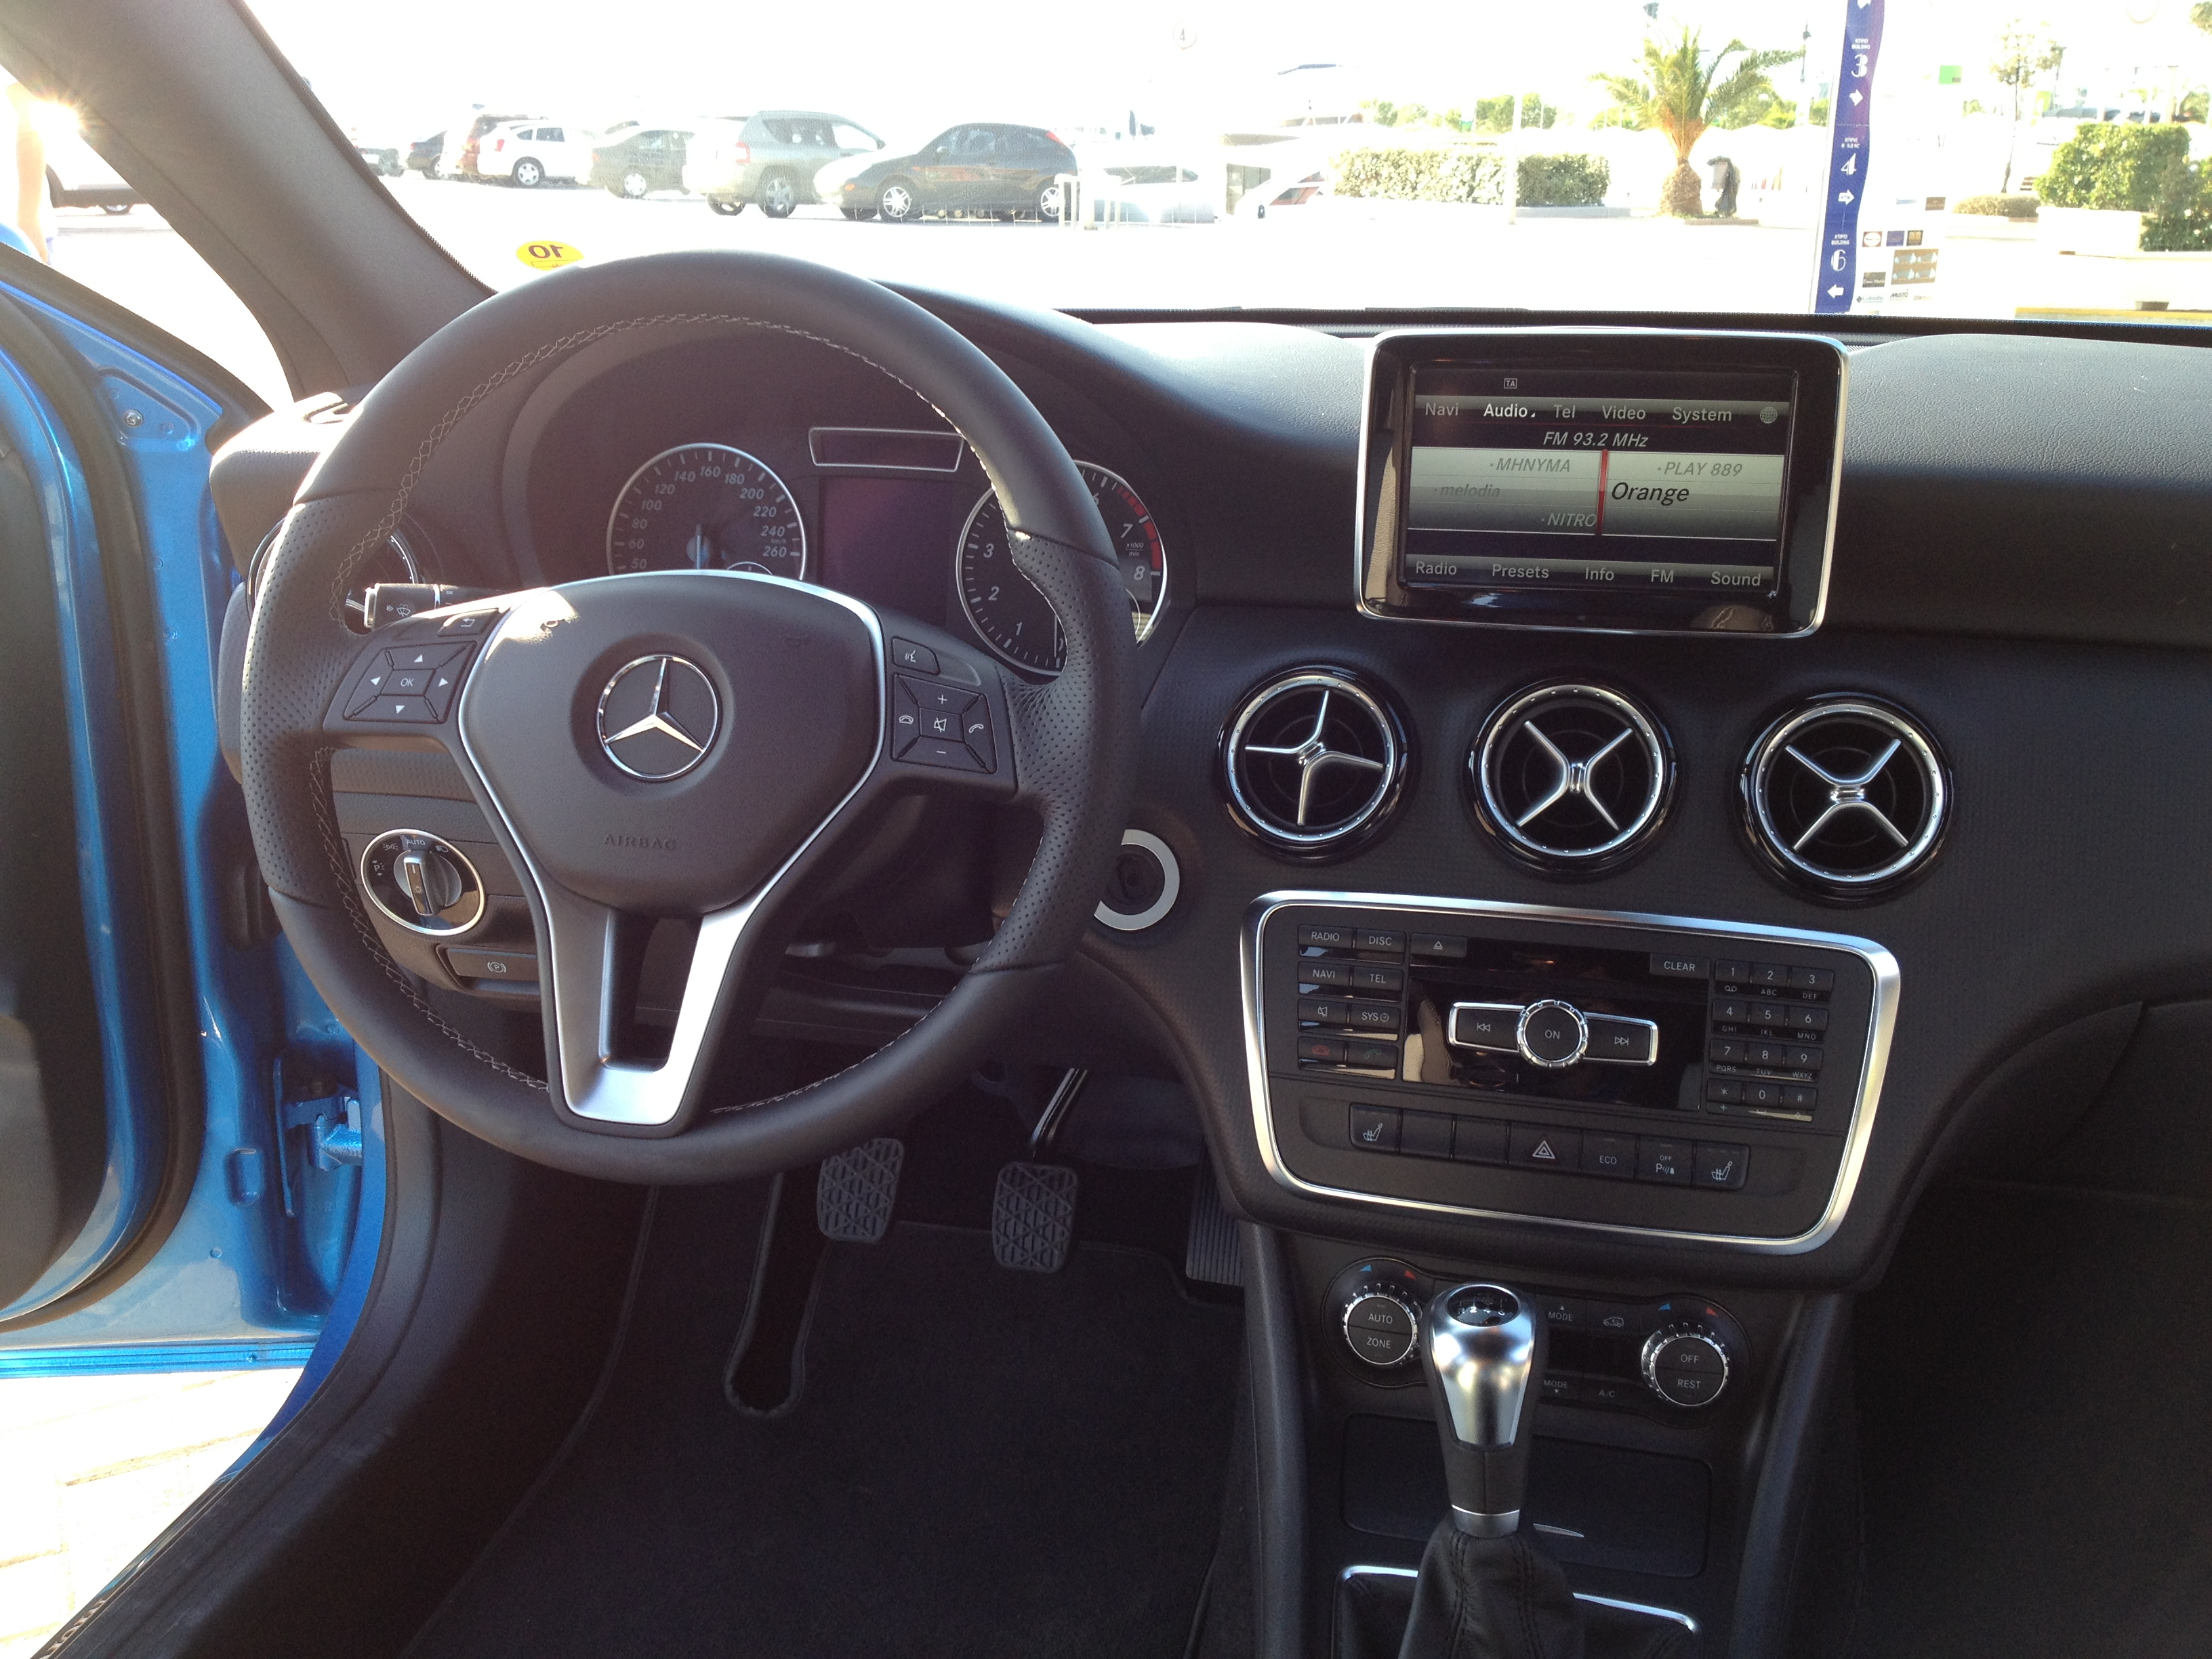 file 2012 blue mercedes a class w176 7661480672 jpg wikimedia commons. Black Bedroom Furniture Sets. Home Design Ideas